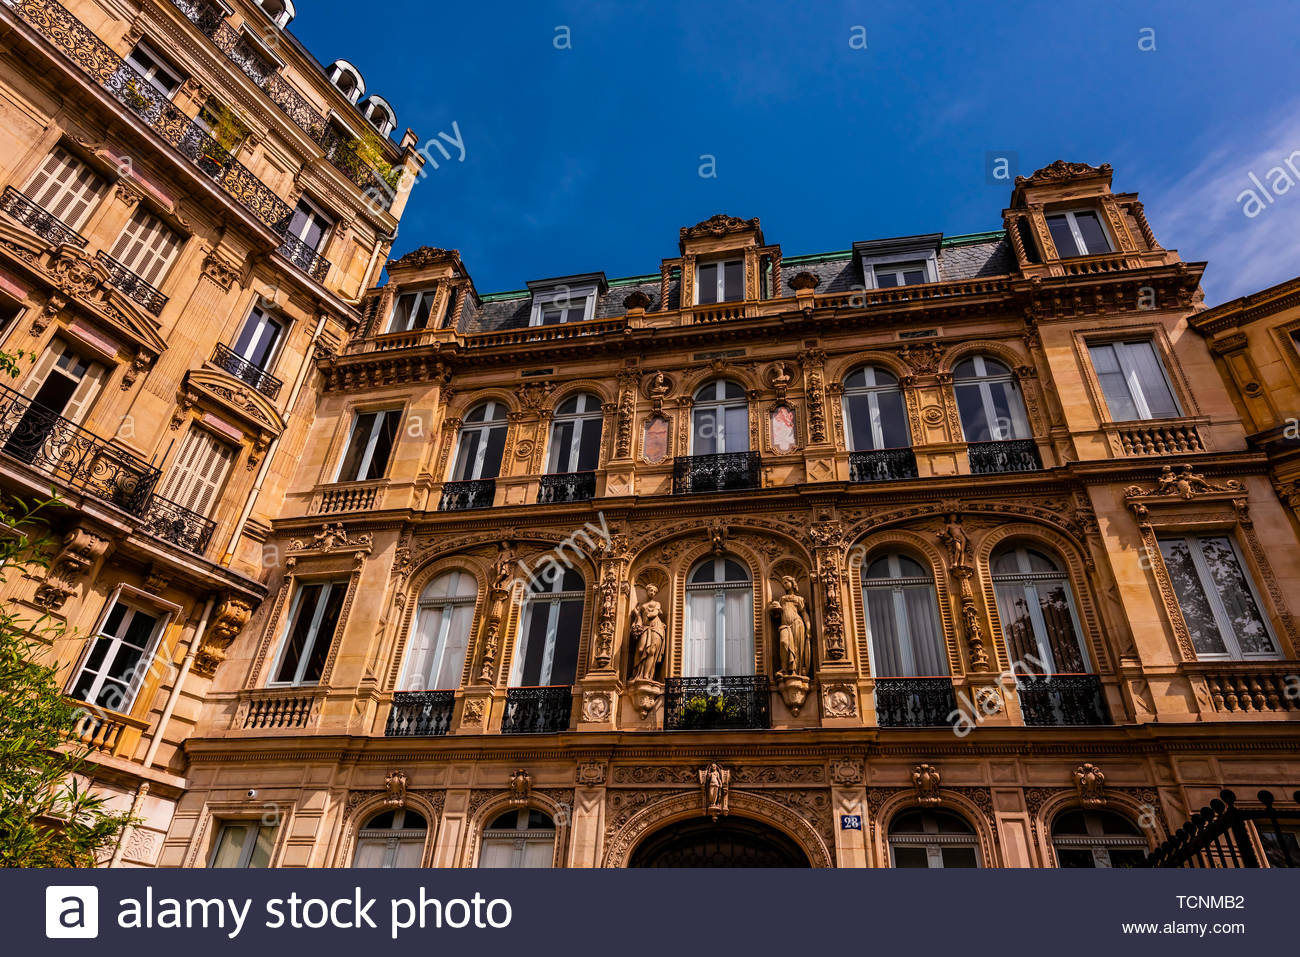 Hotel de la Paiva (Mansion of La Paiva) is an historic townhouse located at 28 Place St. Georges in the 9th arrondissement, Paris, France. Stock Photo